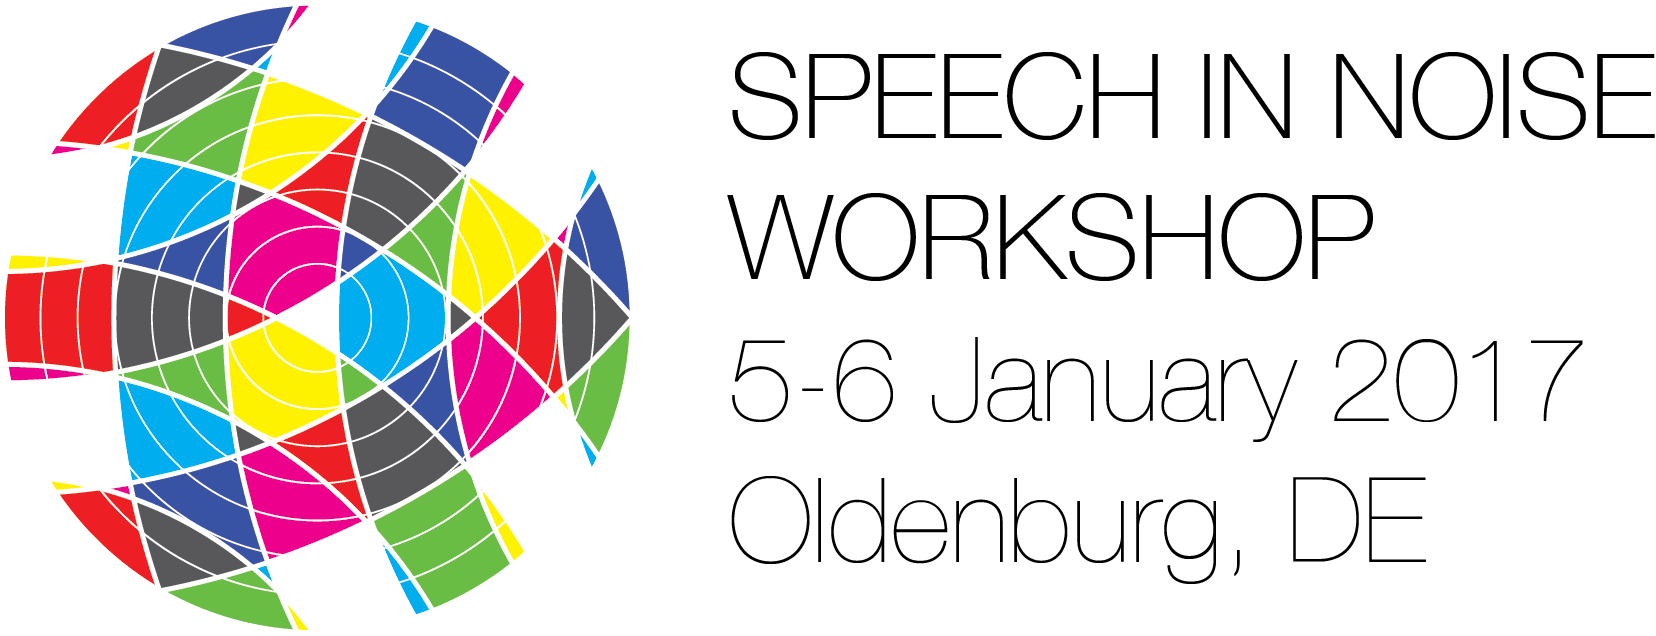 9th Speech in Noise Workshop, 5-6 January 2017, Oldenburg